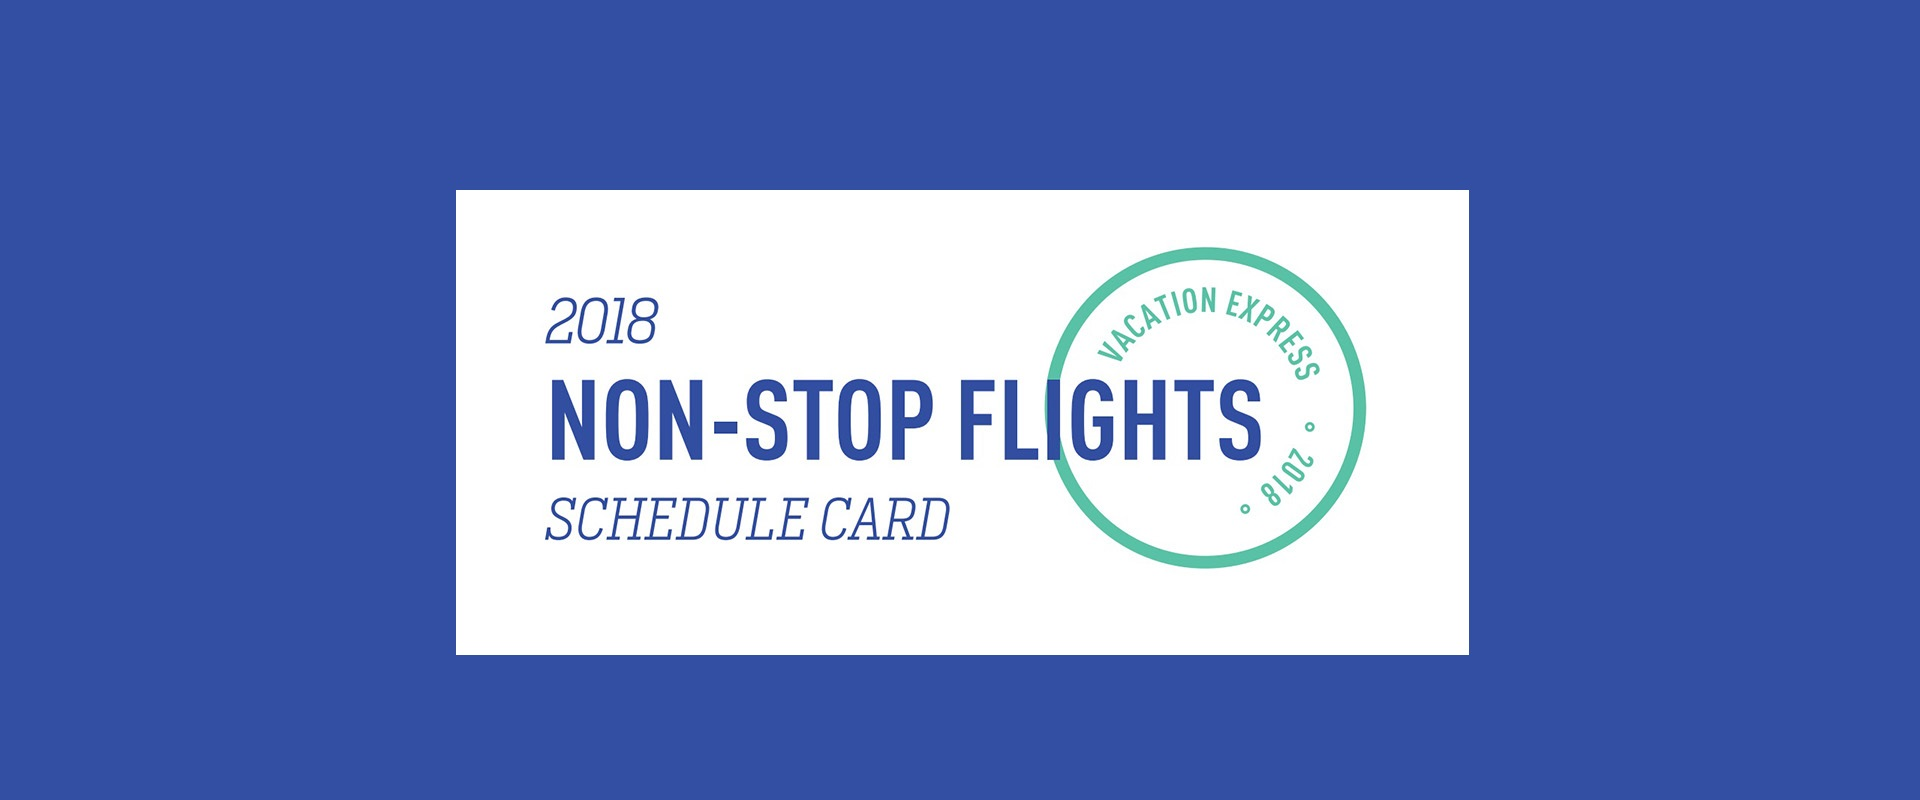 Vacation-Express-2018-Non-Stop-Charter-Schedule-Header